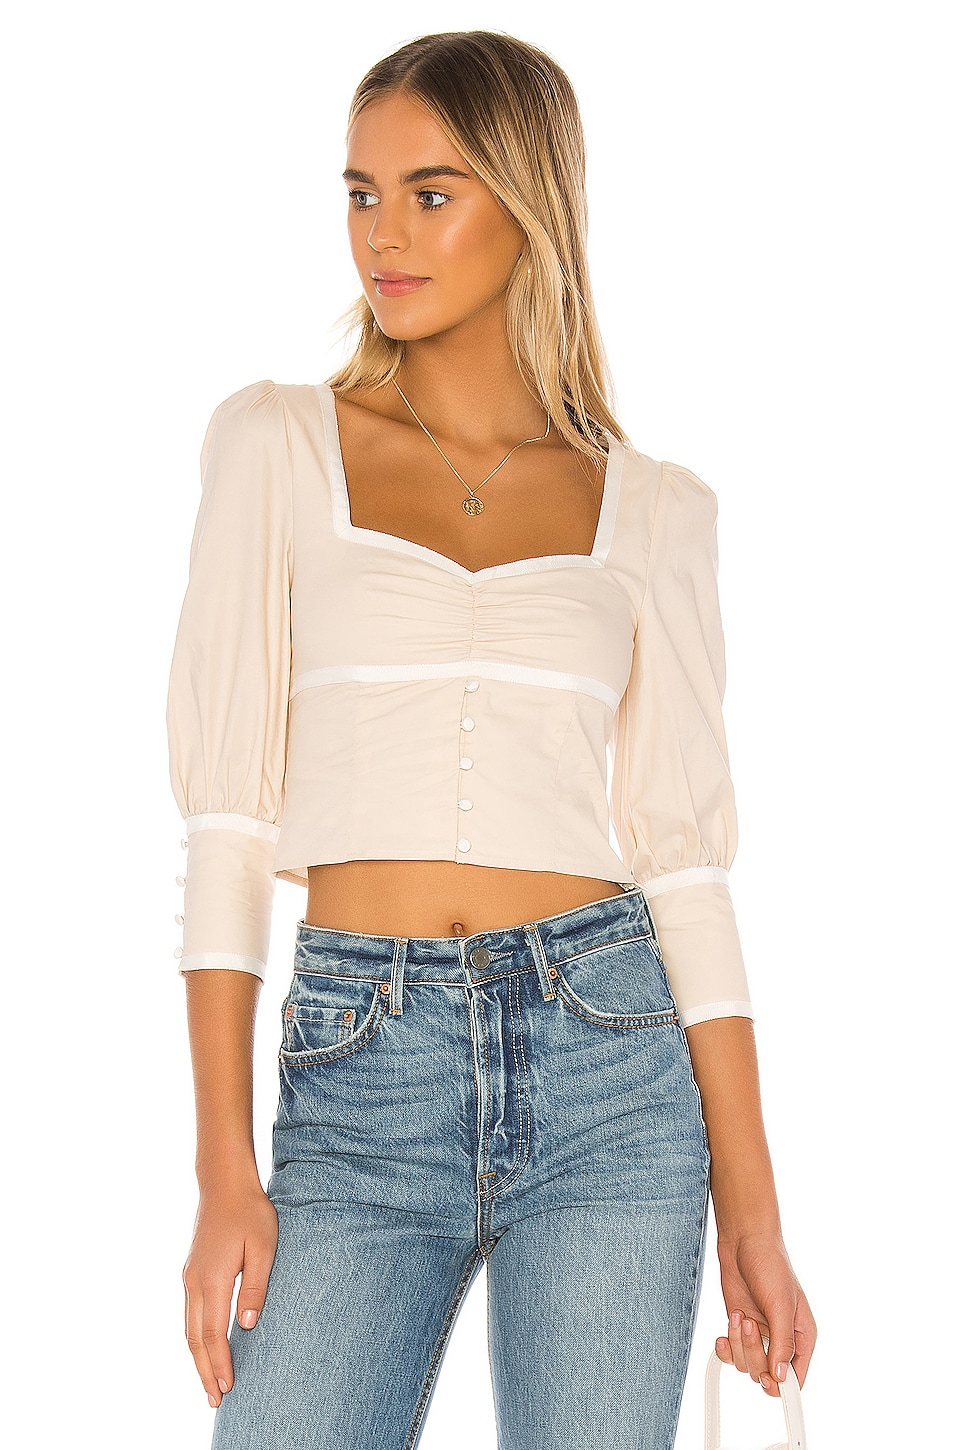 Privacy Please Corinne Top in Pearled Ivory